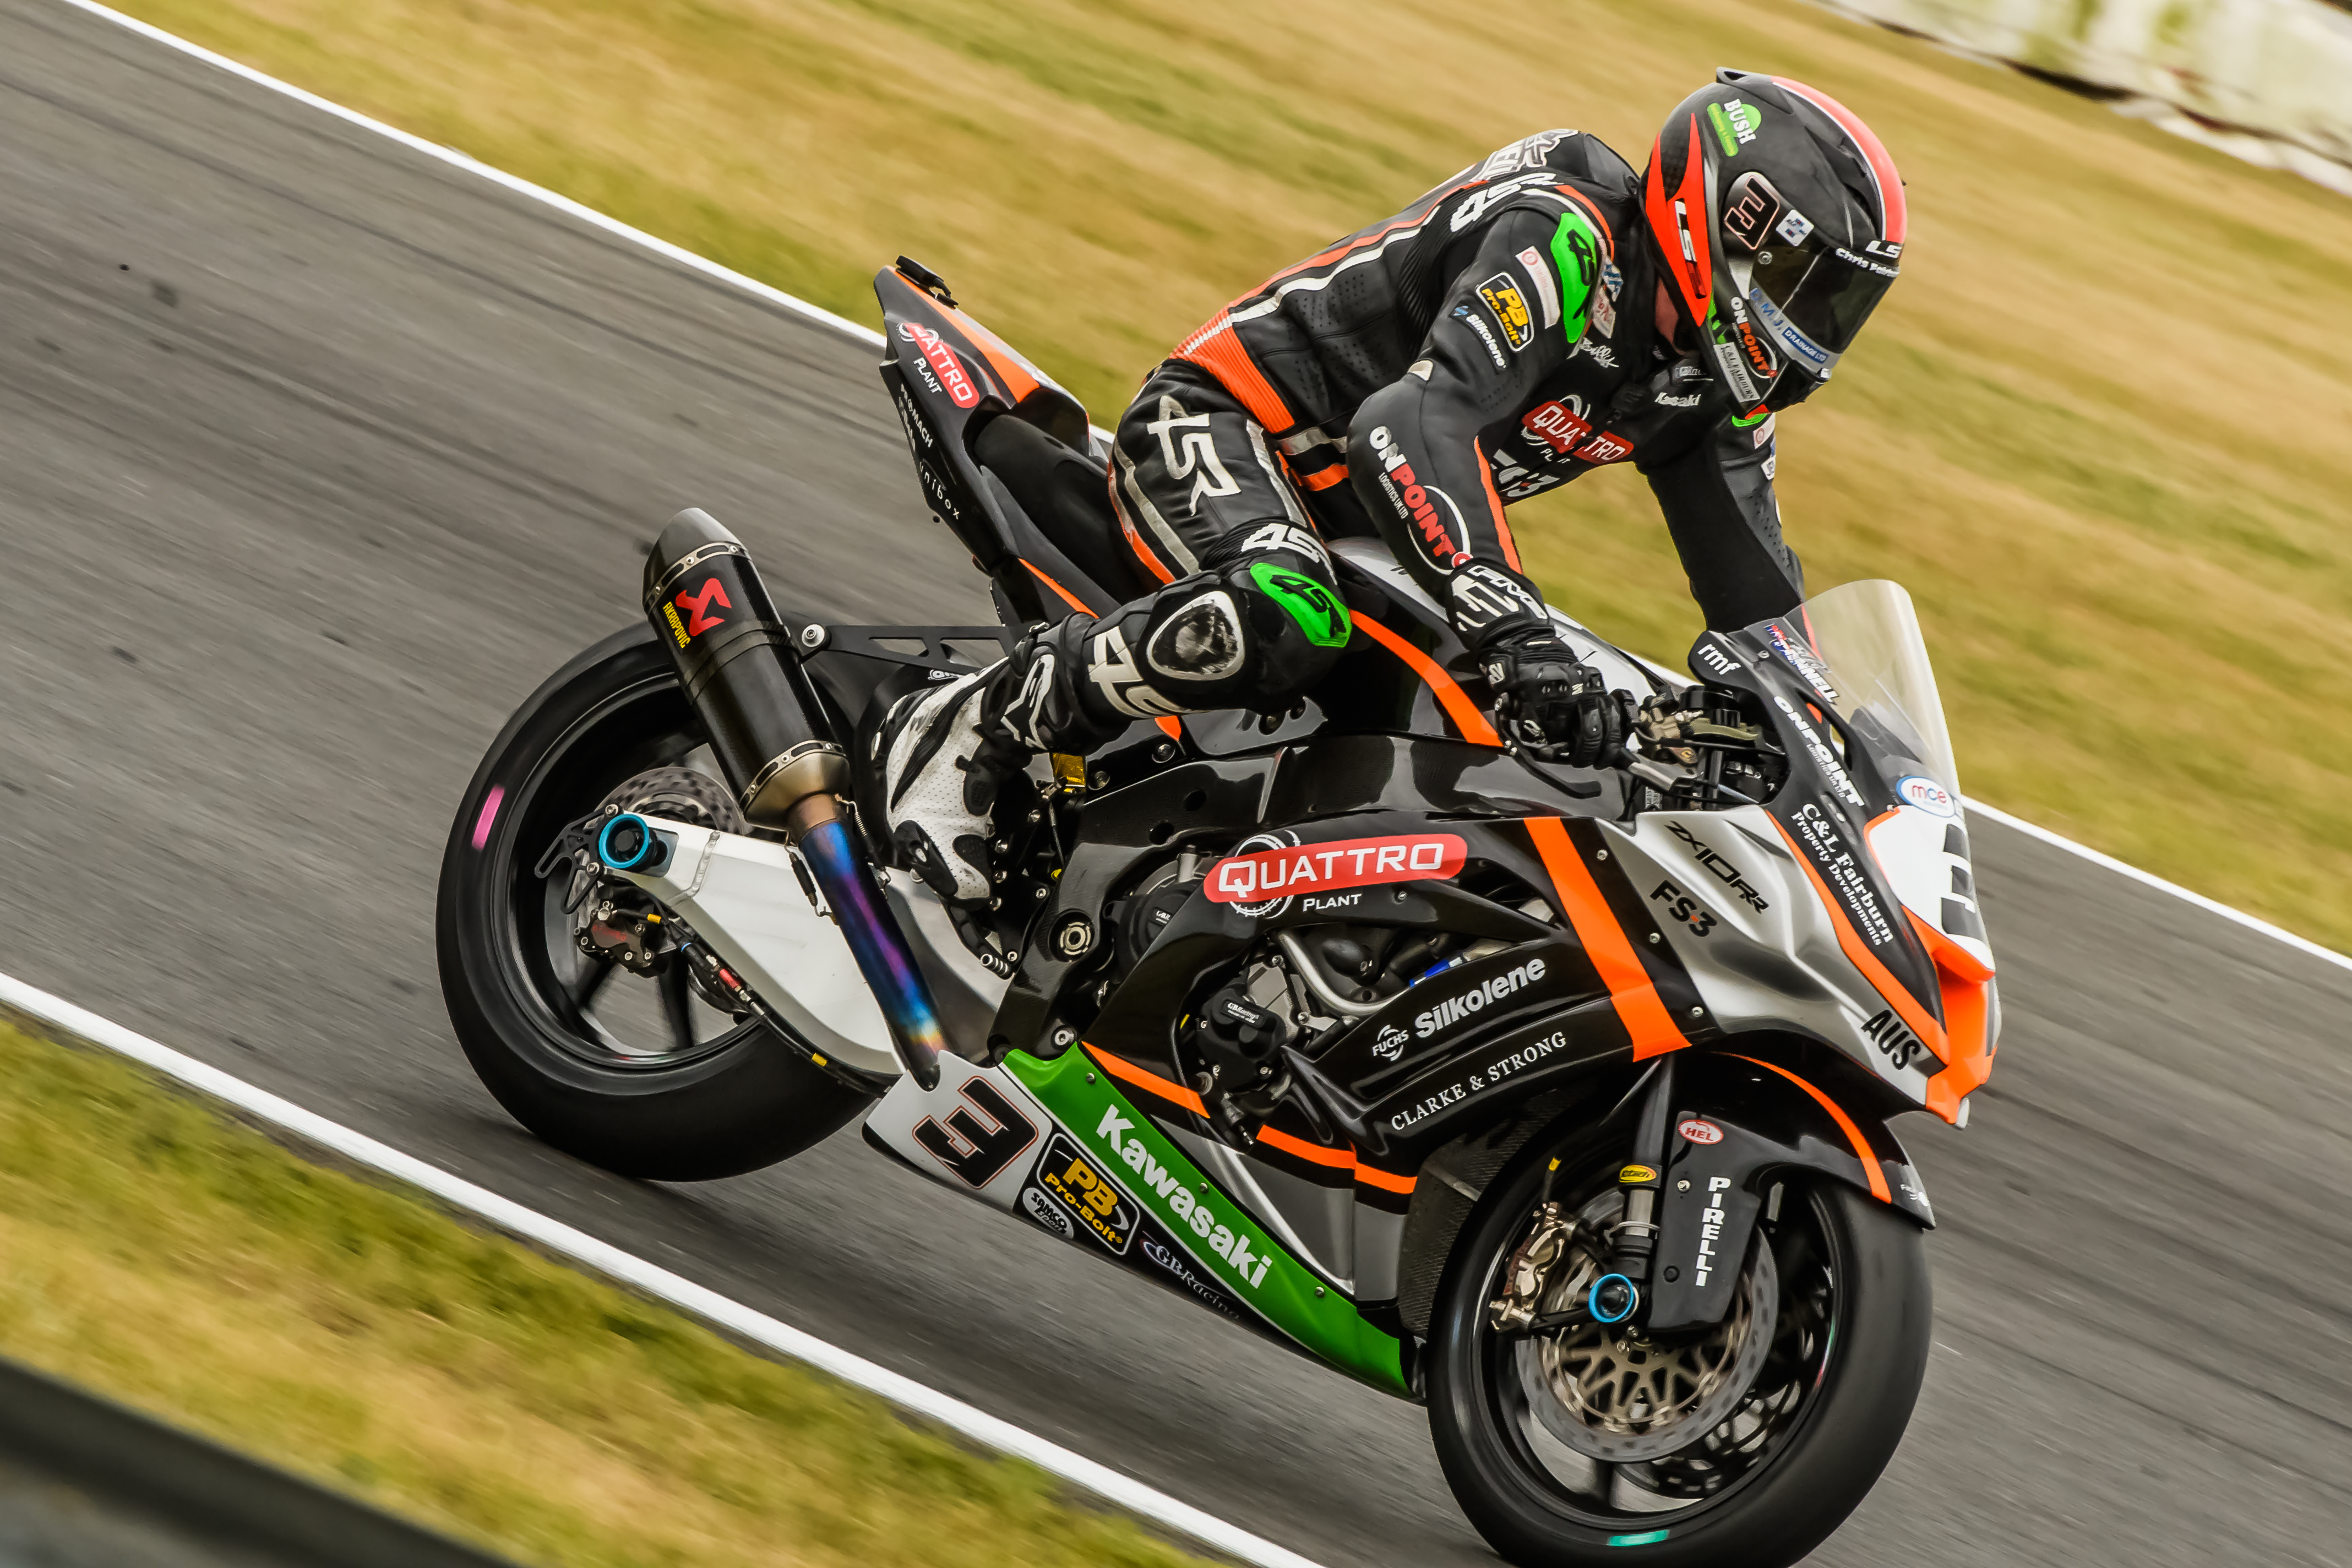 Nigel Snook (FS3 Quattro Plant Kawasaki Team Owner) Q&A: Watch This Space in 2018 – ThePitcrewOnline